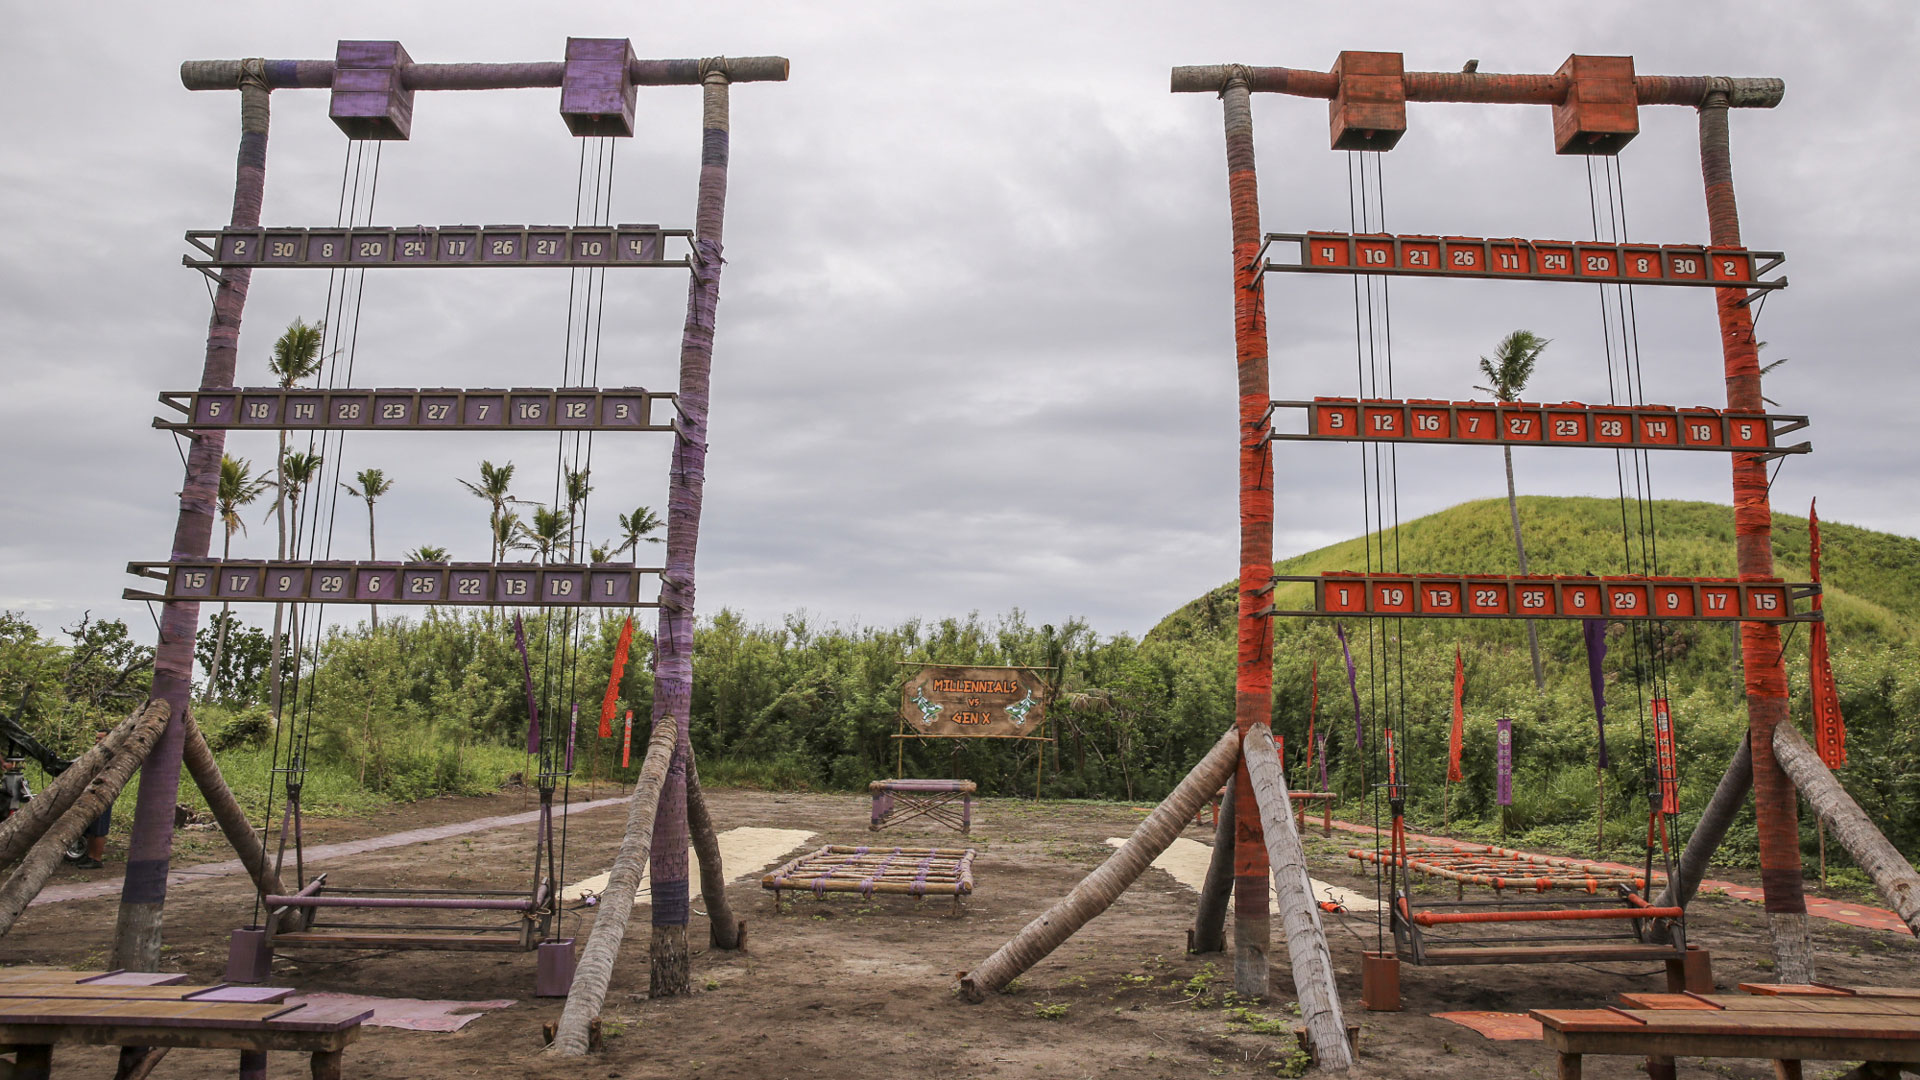 The castaways will have to aim high if they want to win Immunity this week.